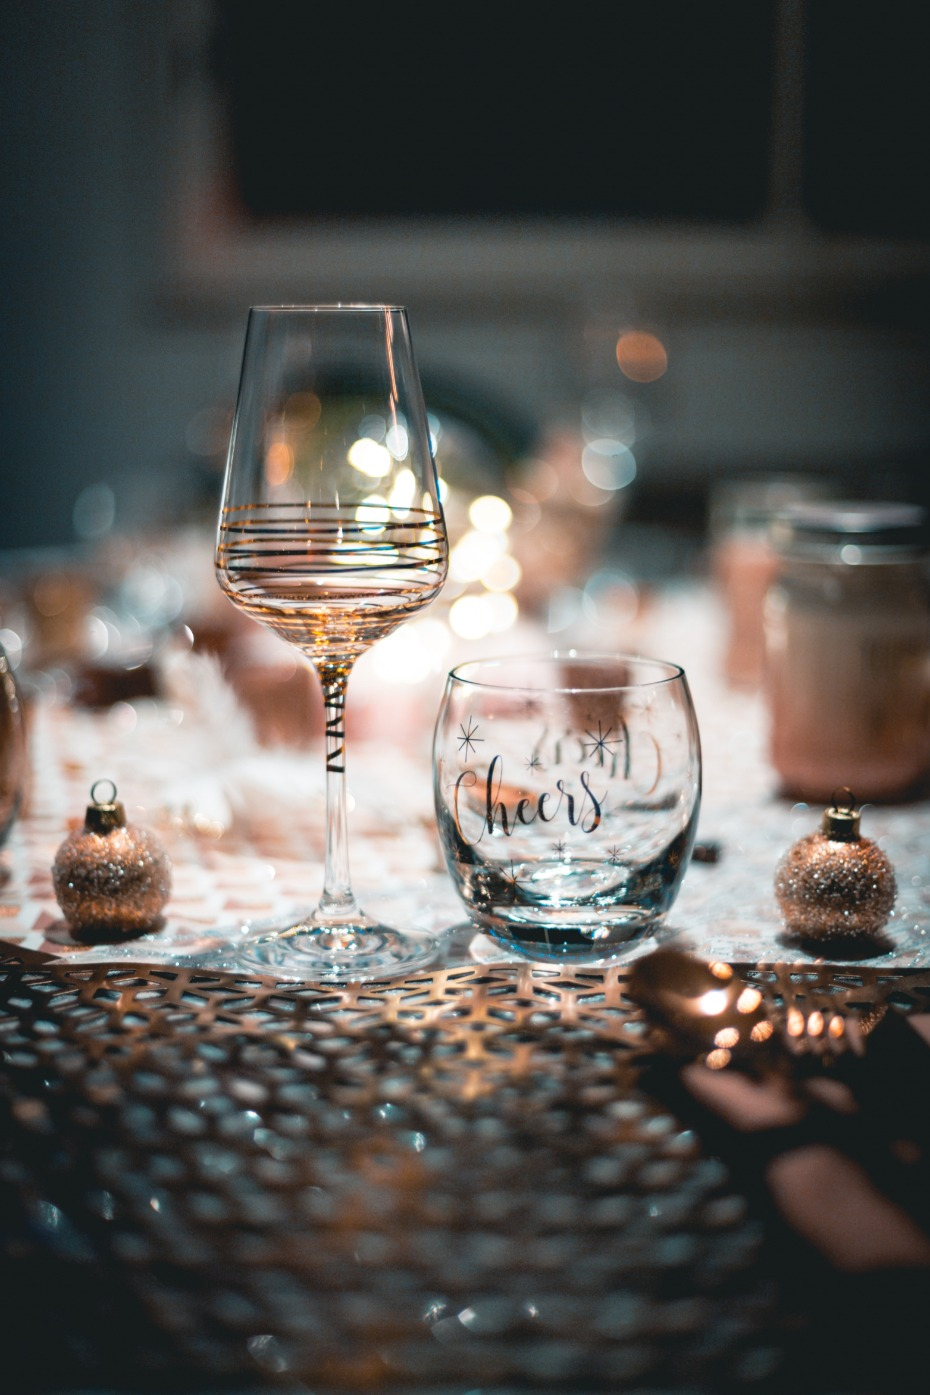 festive holiday table decor